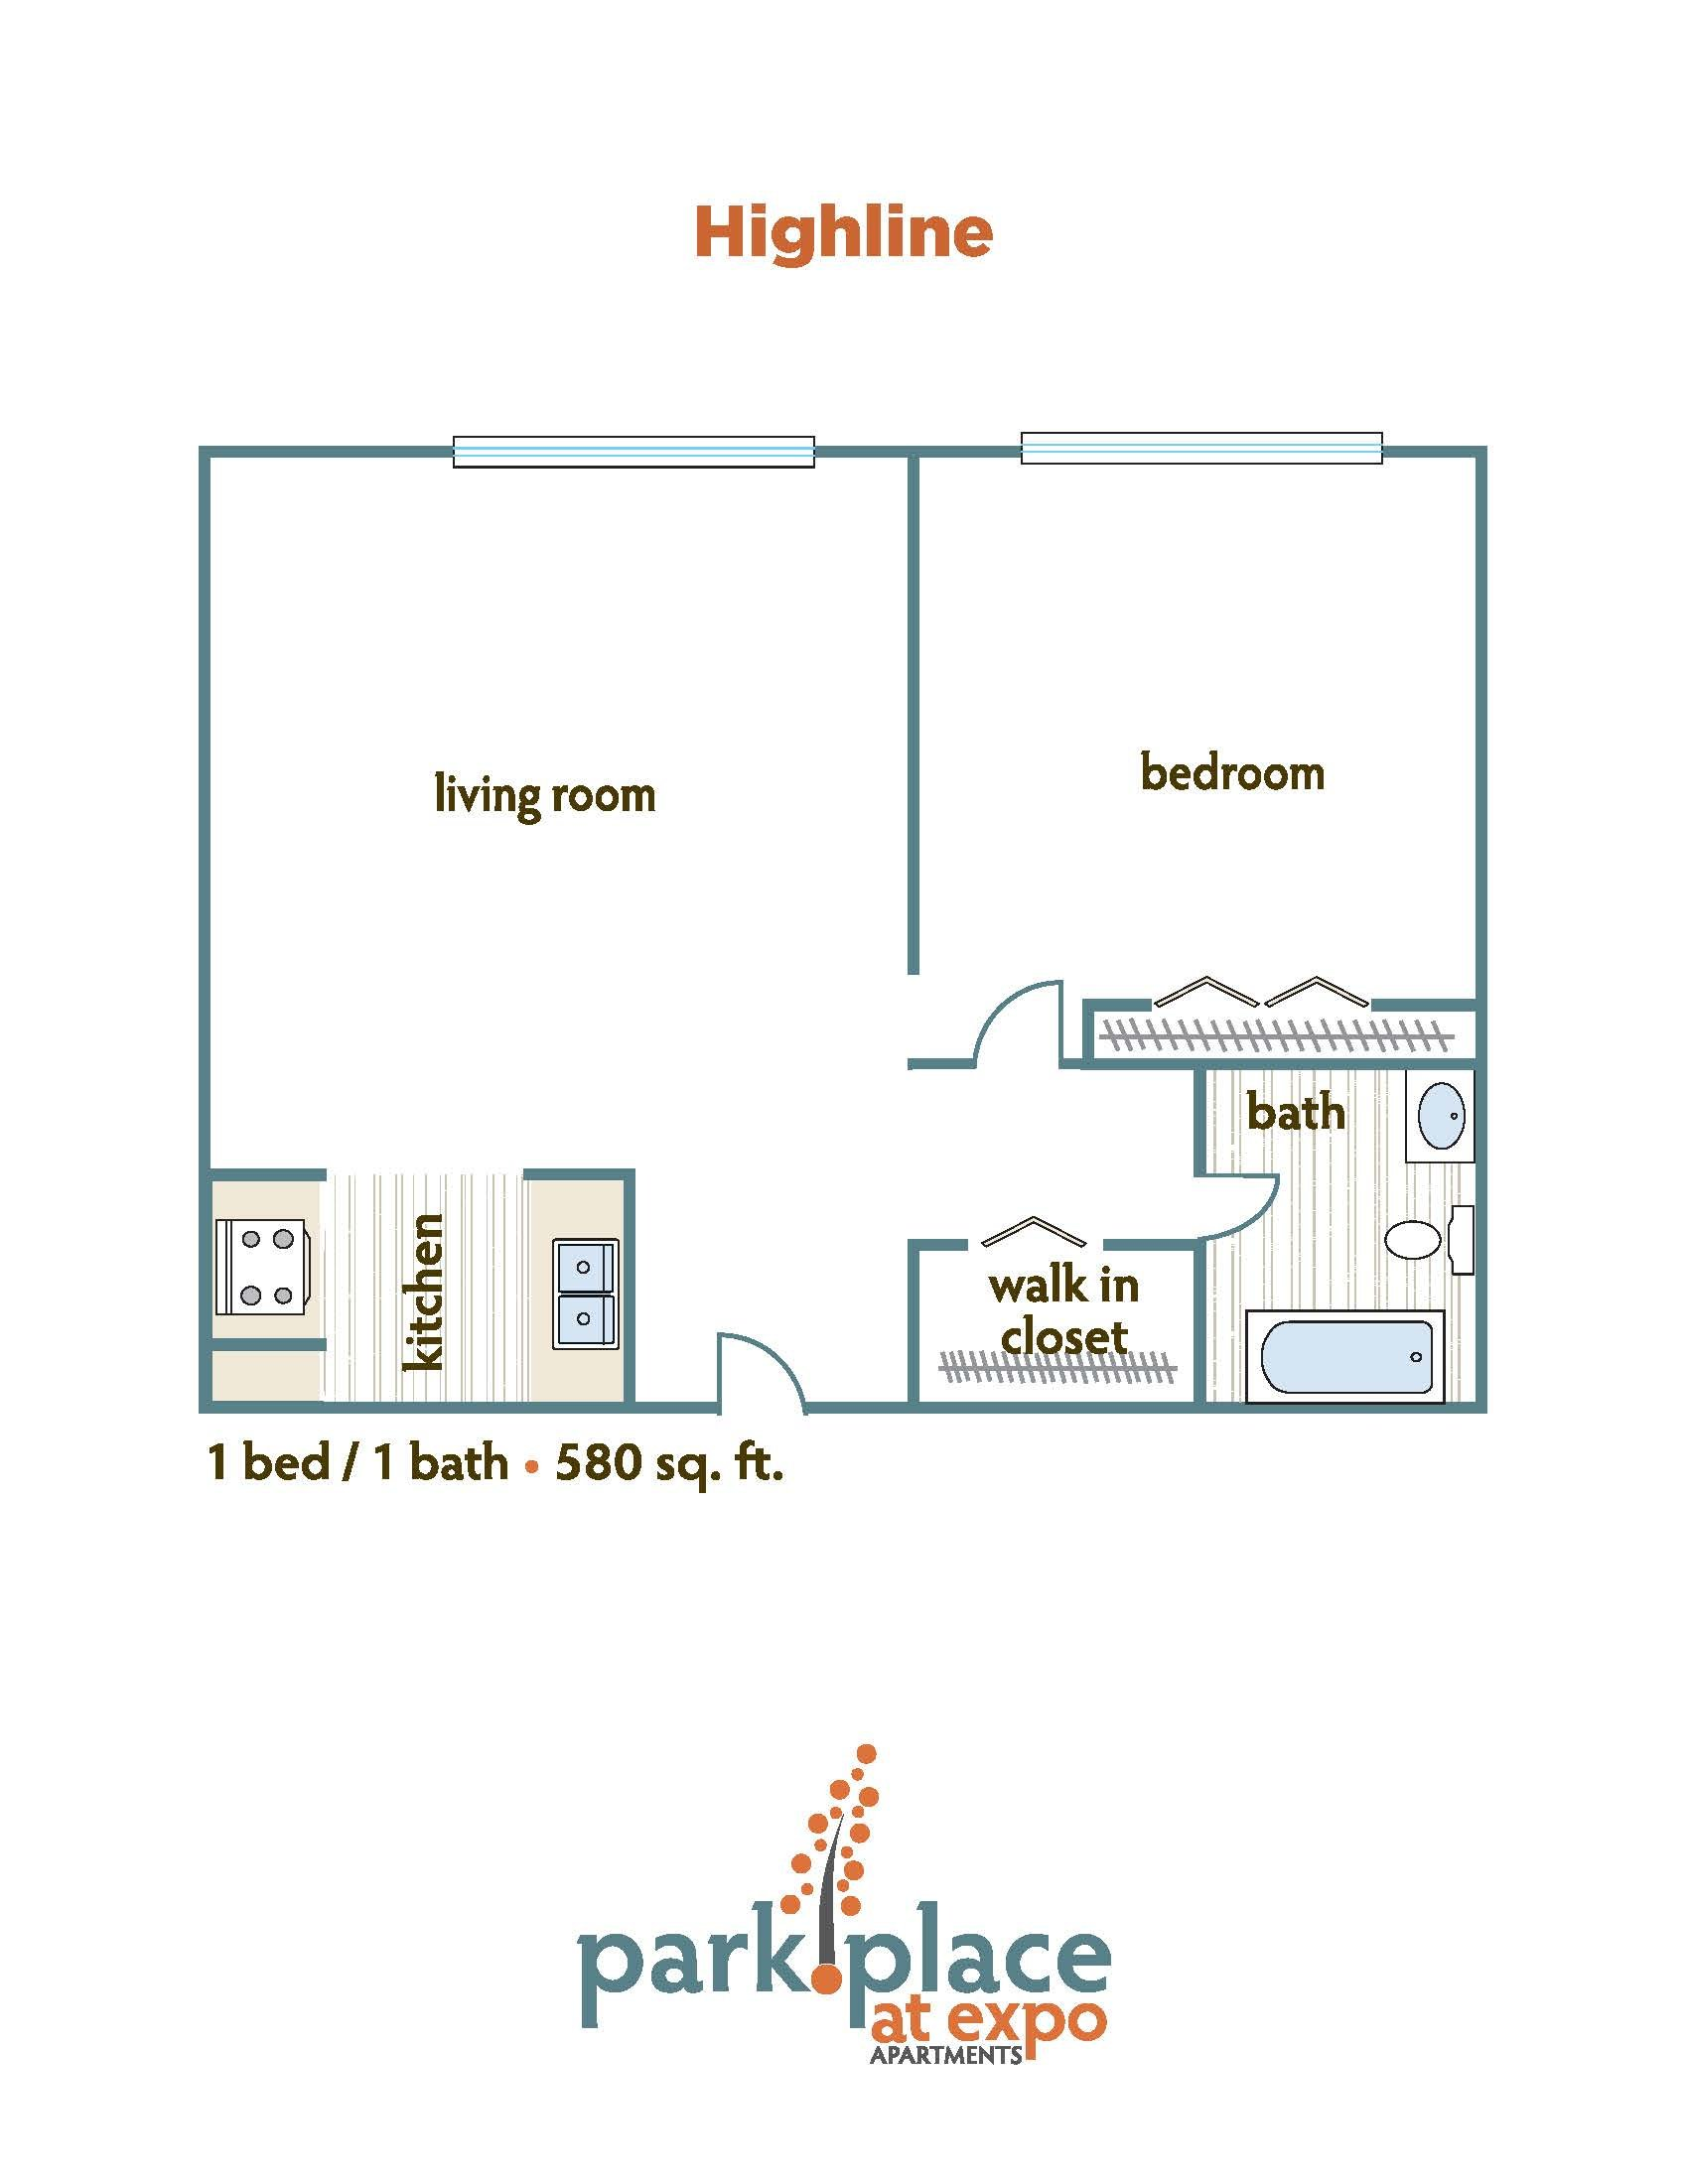 Highline floorplan